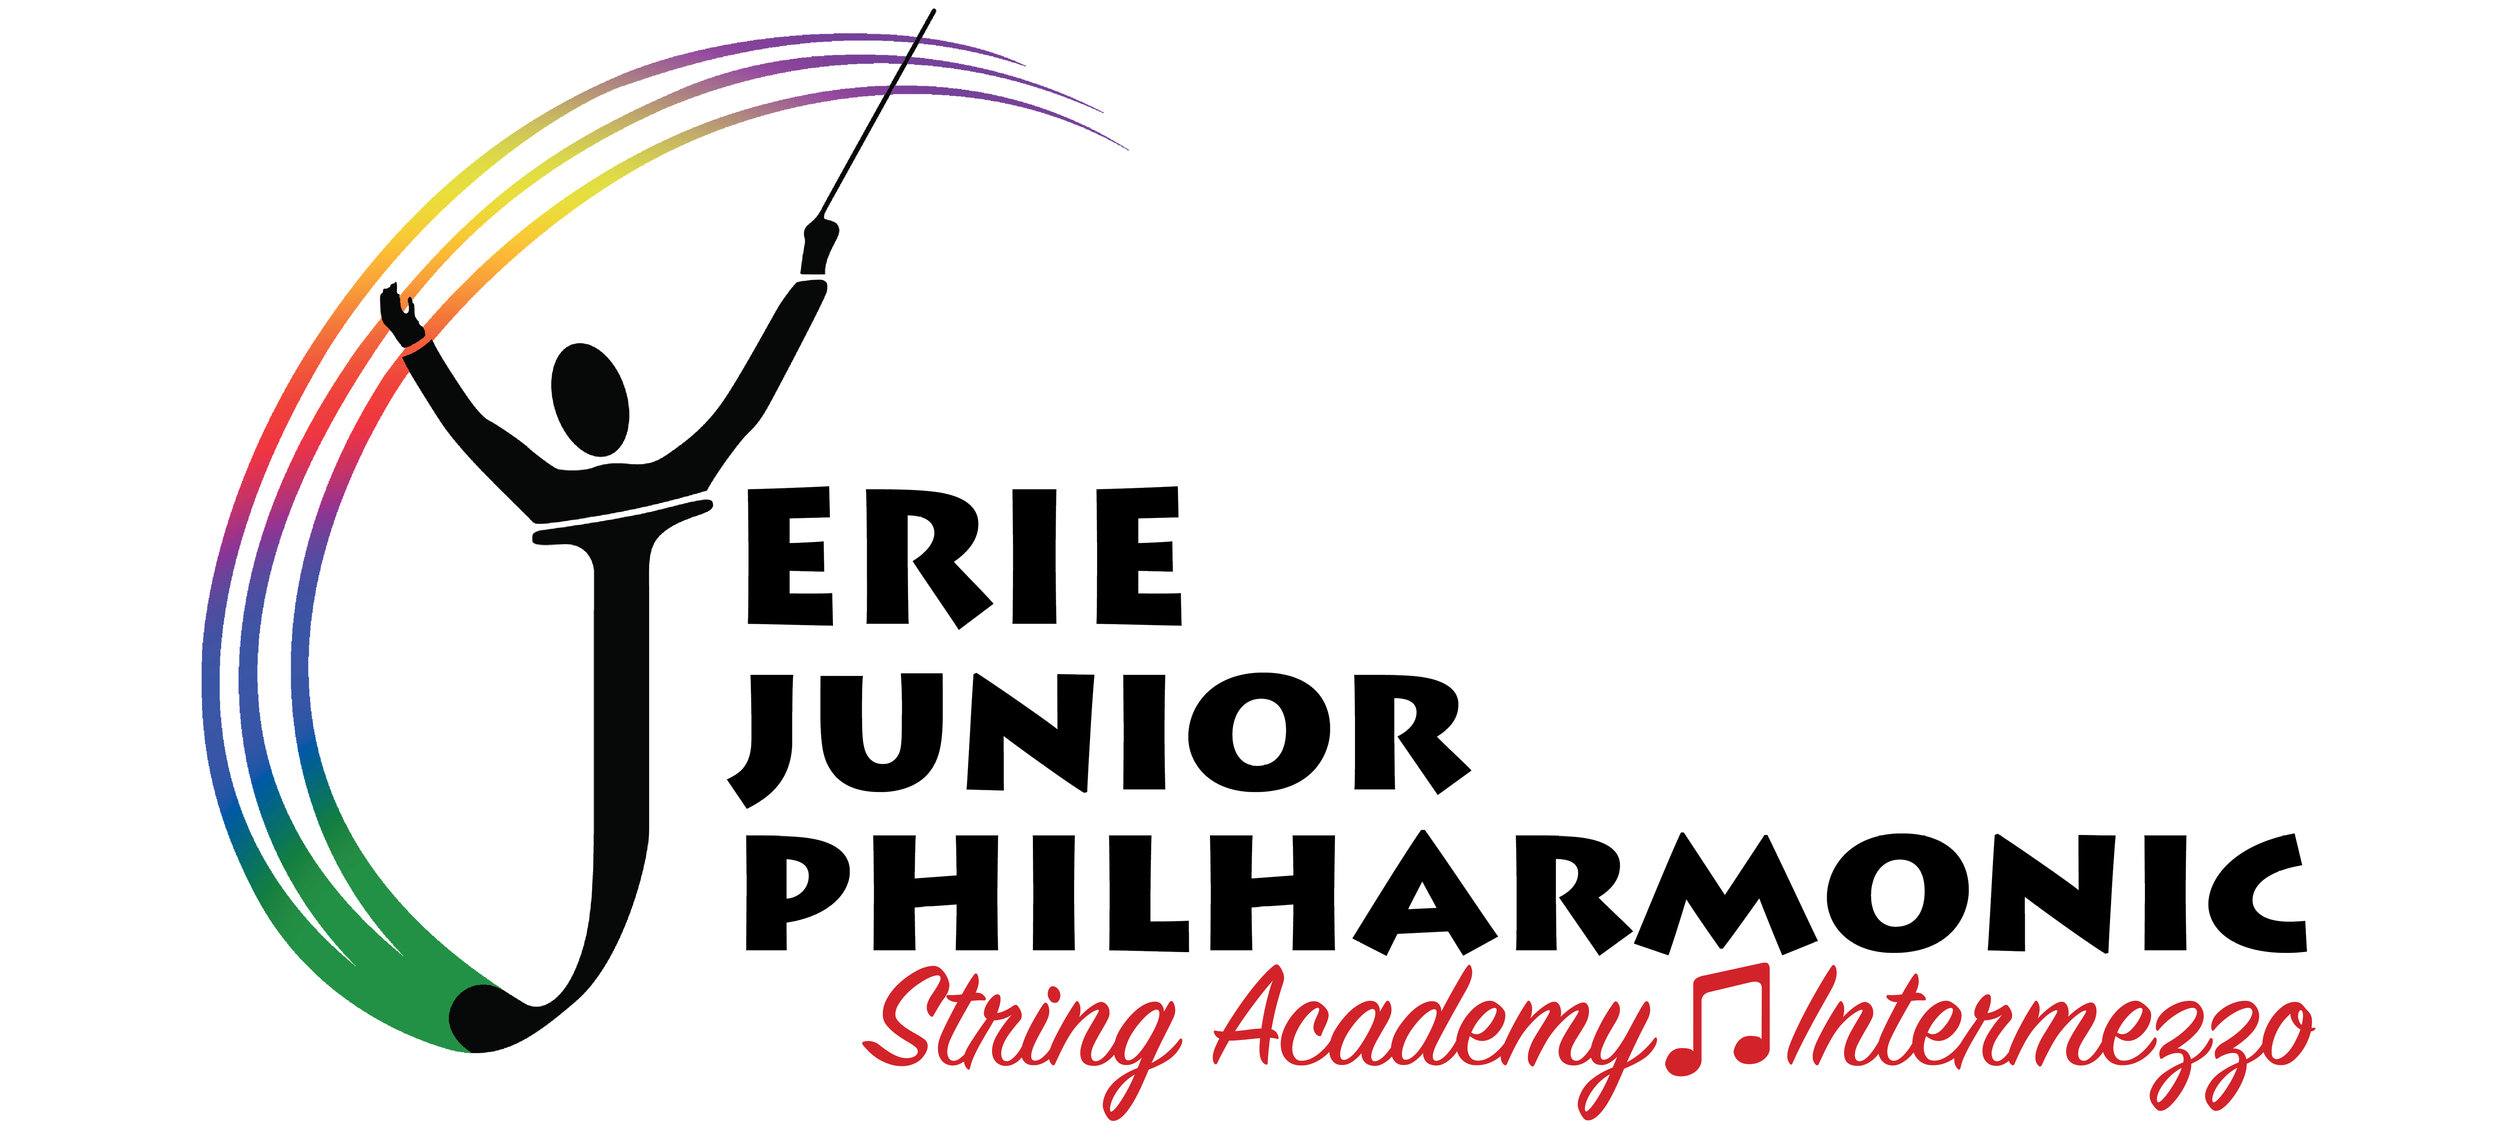 Jr. Phil Intermezzo Srings LOGO.jpg